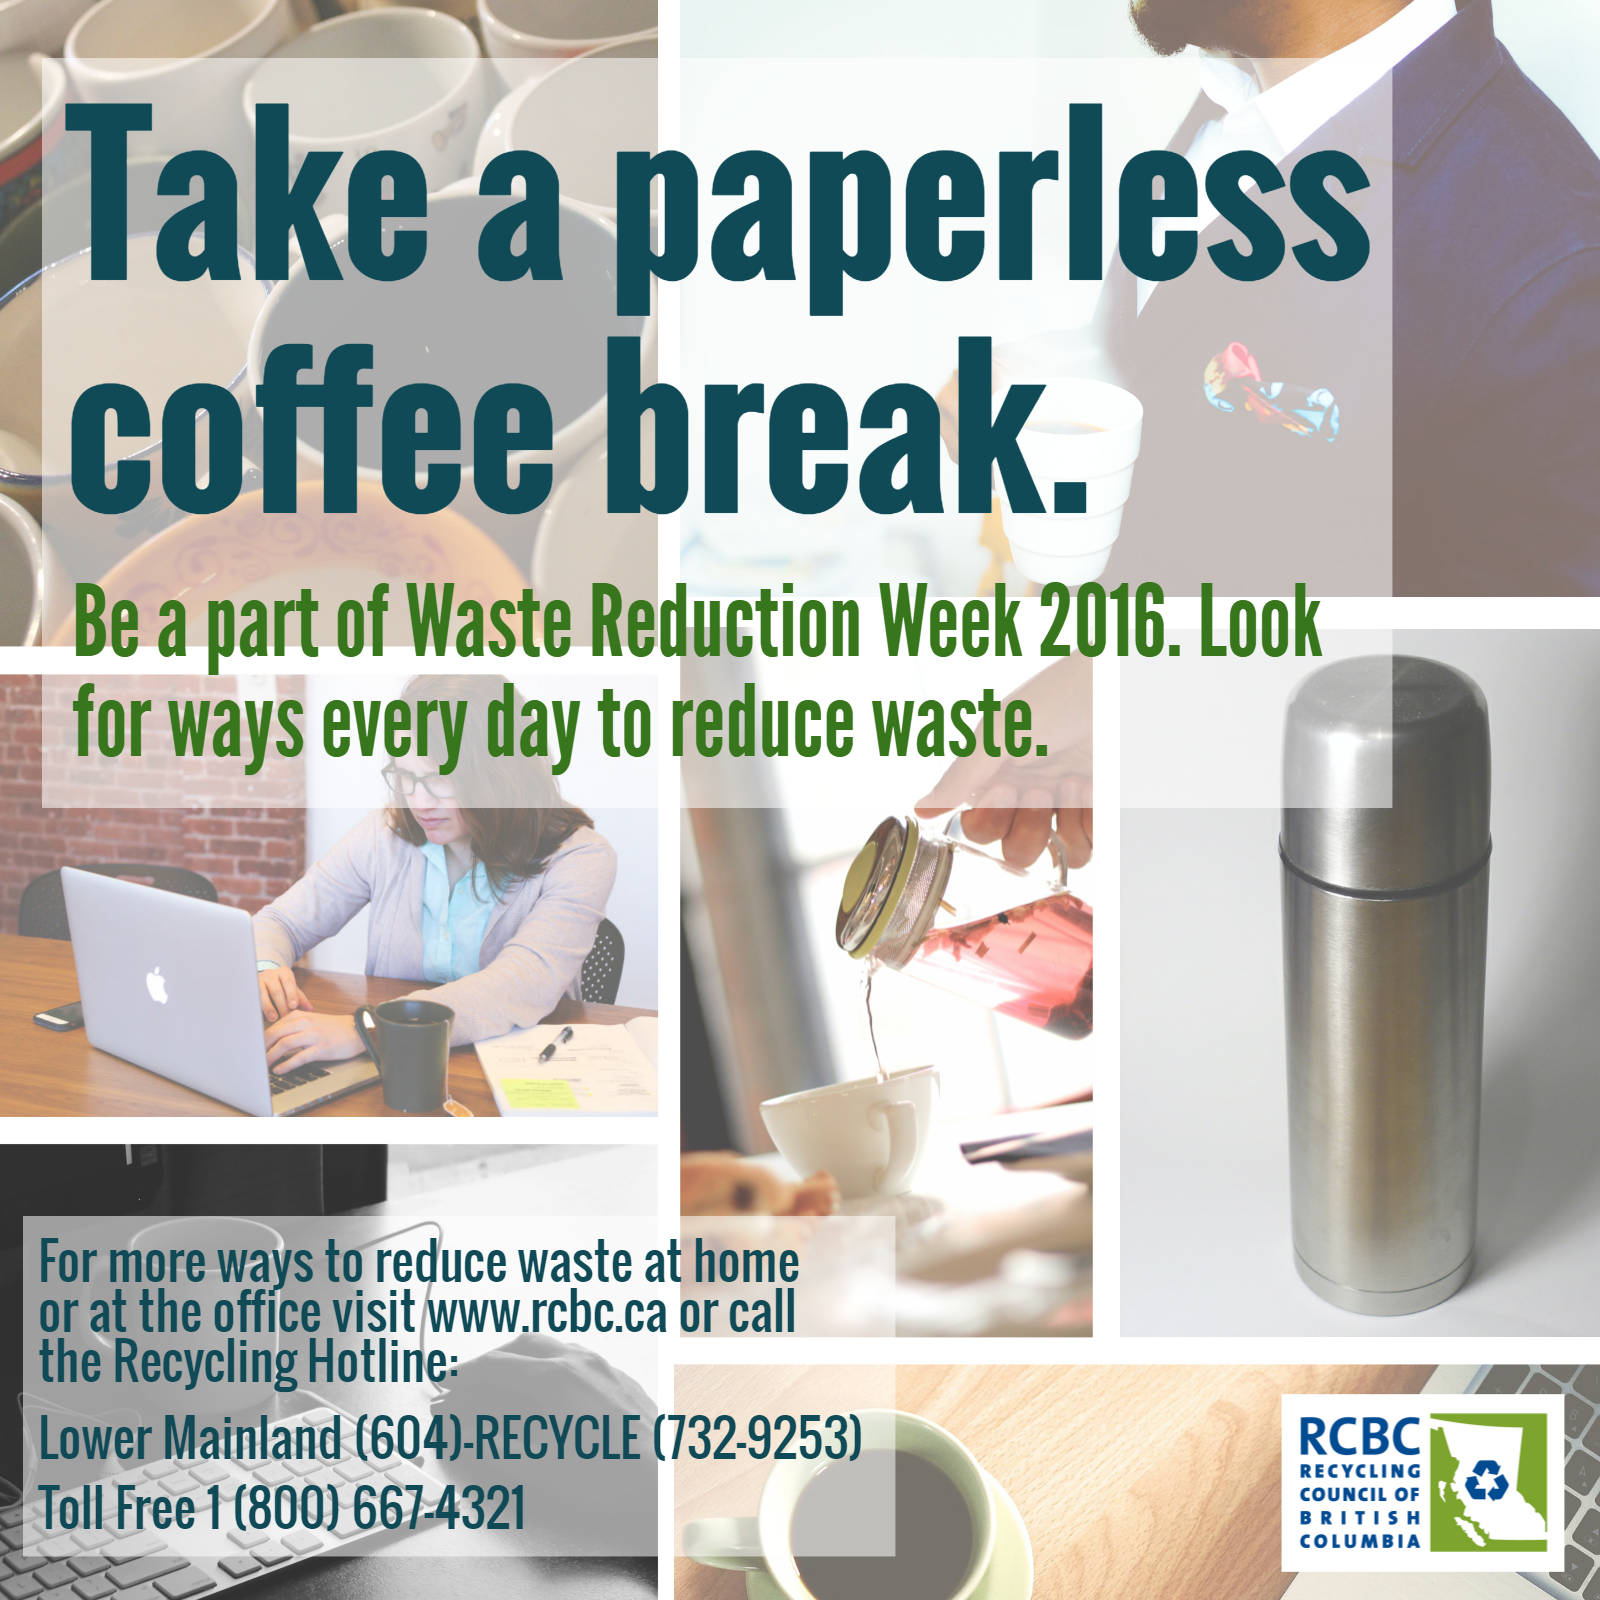 Paperless Coffee Break